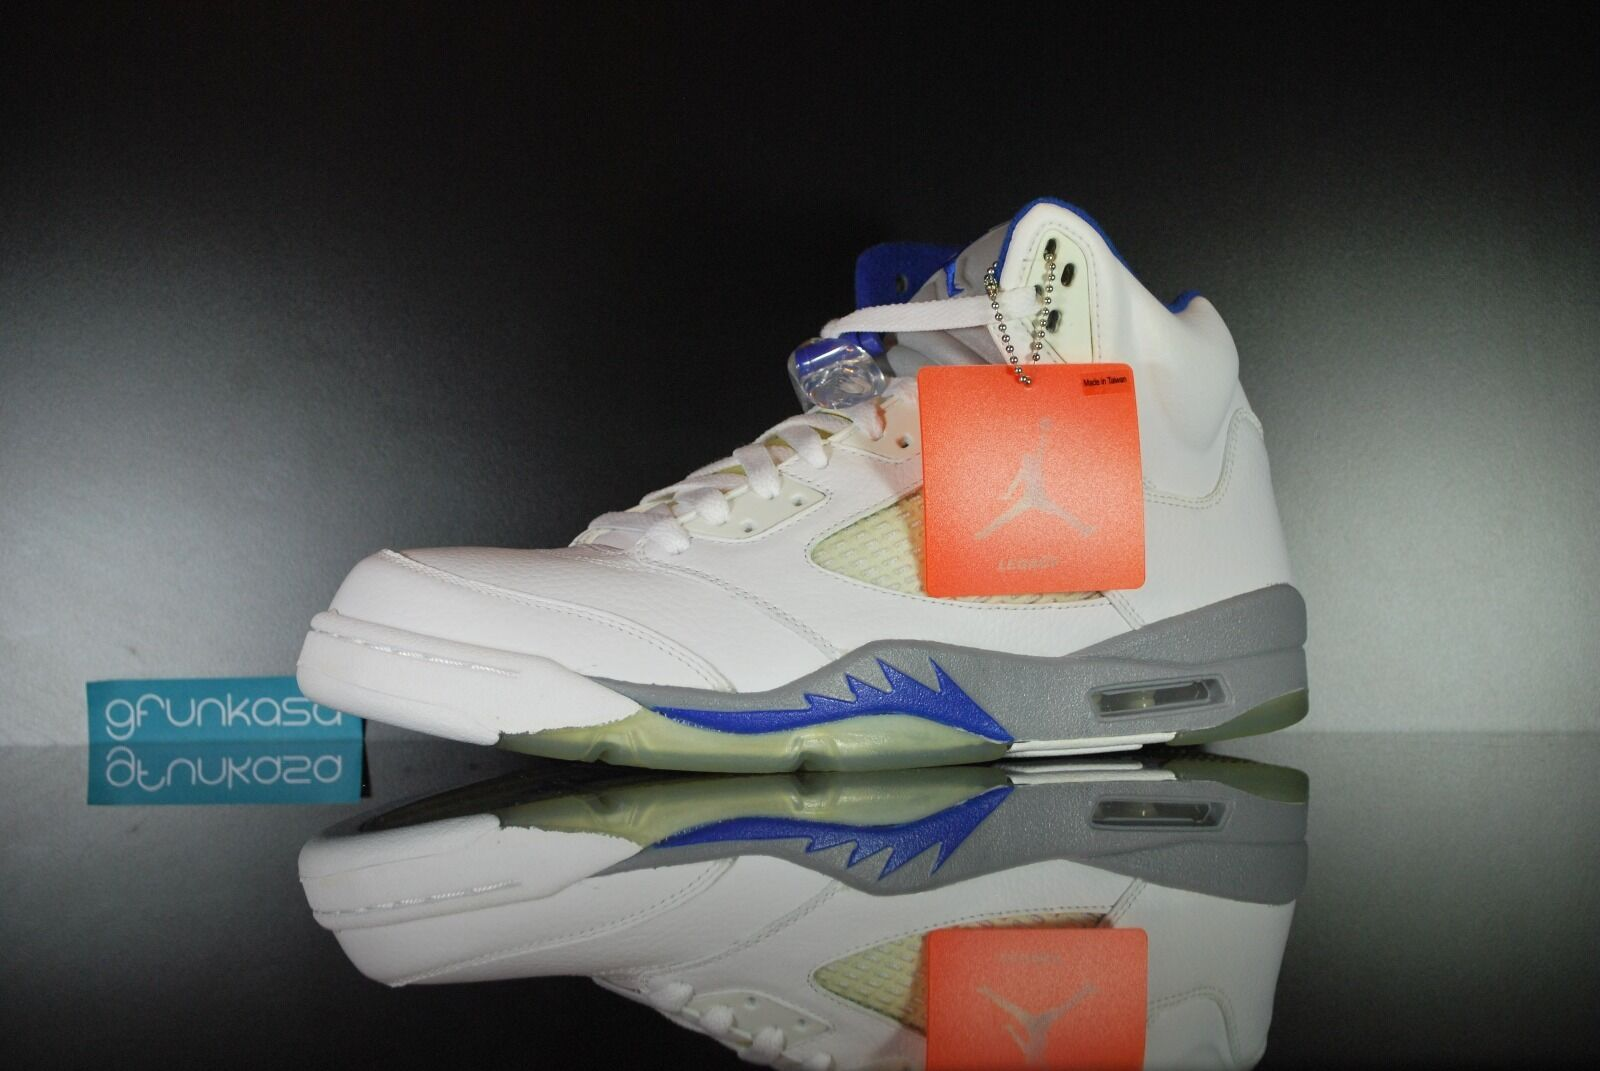 59b58171d4a ... coupon code 2018 nike air jordan 5 retro stealth size 11.5 ds v white  grey sport